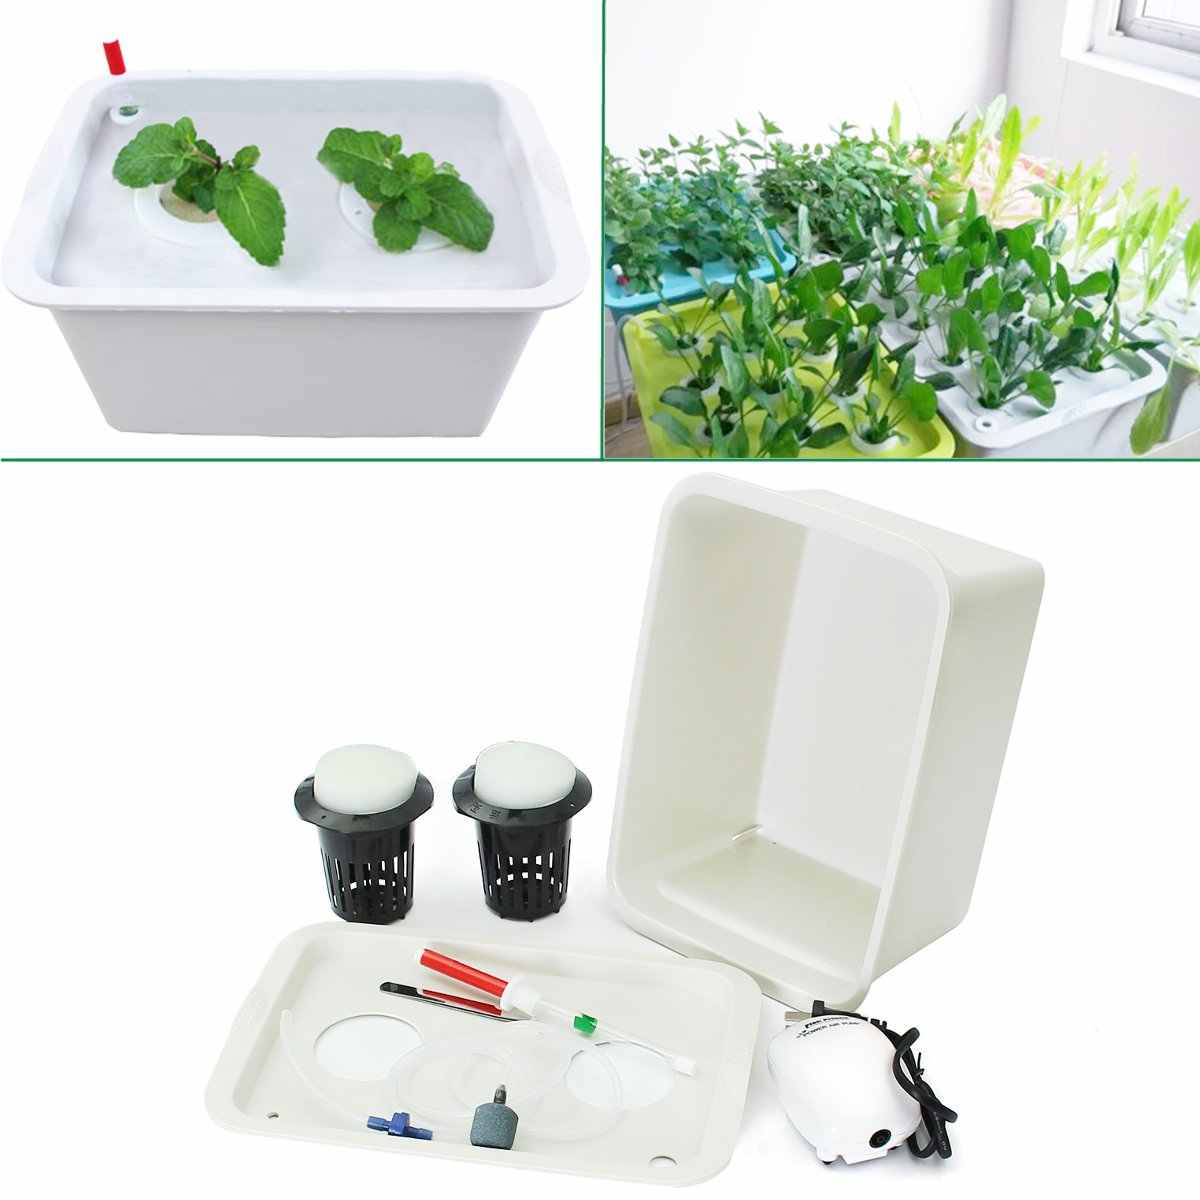 220V Hydroponic System Nursery Pots Plants Grow Kit Water Planting Soilless 2 Holes Garden Home Indoor Cabinet Case